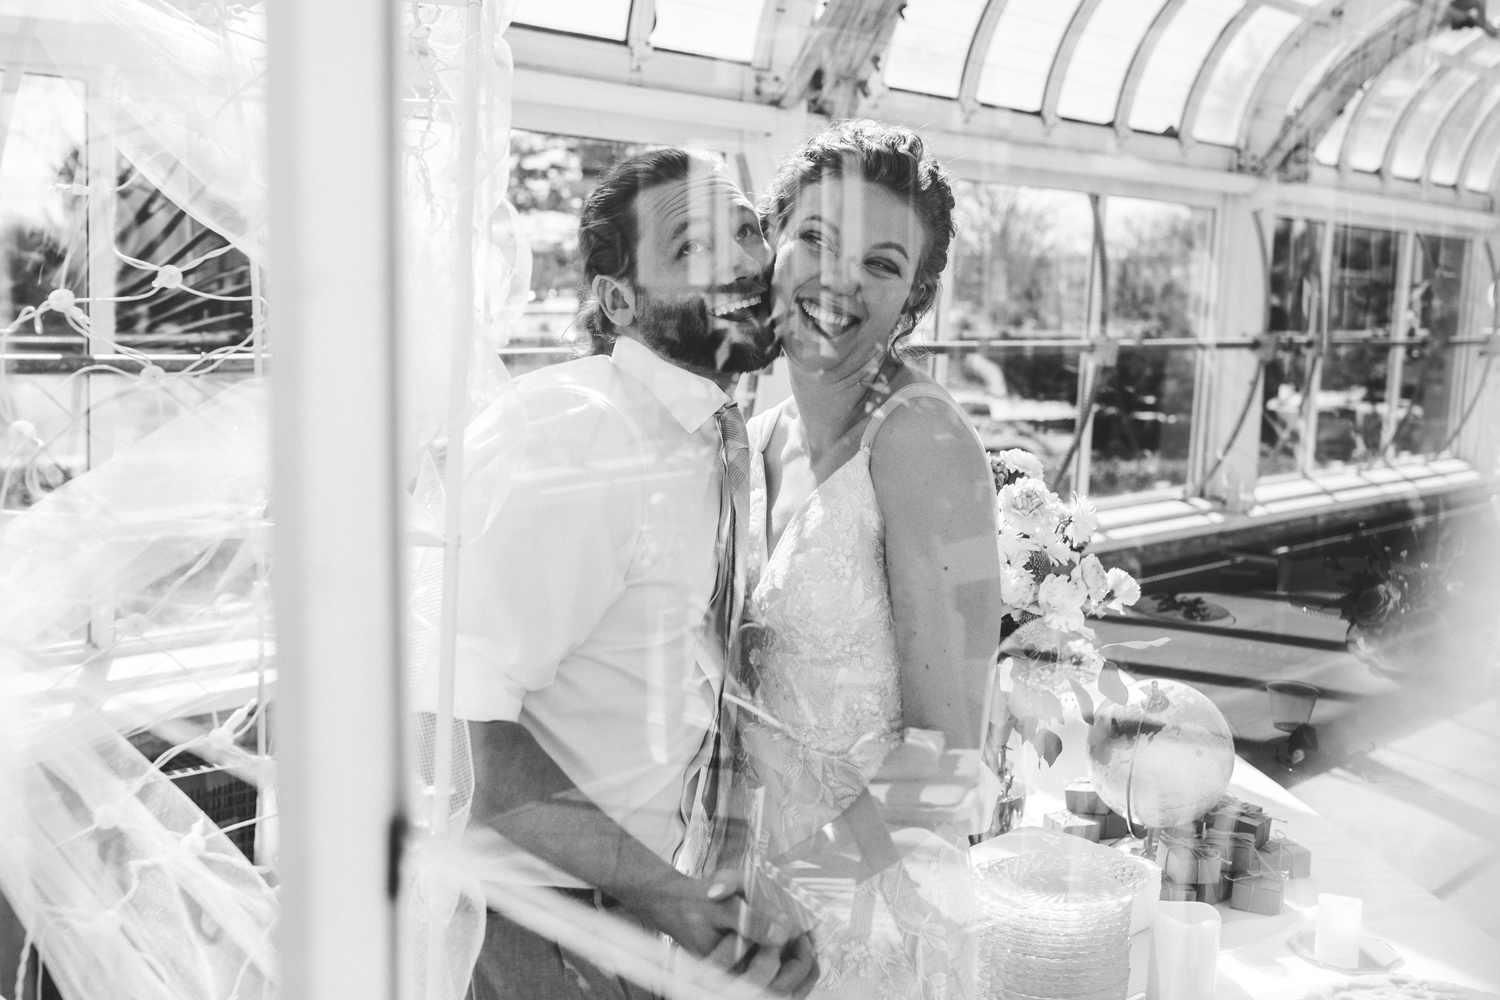 Black and white fun images of bride and groom thru a window at the Will Rogers Park greenhouse in OKC by Amanda Lynn Photography.